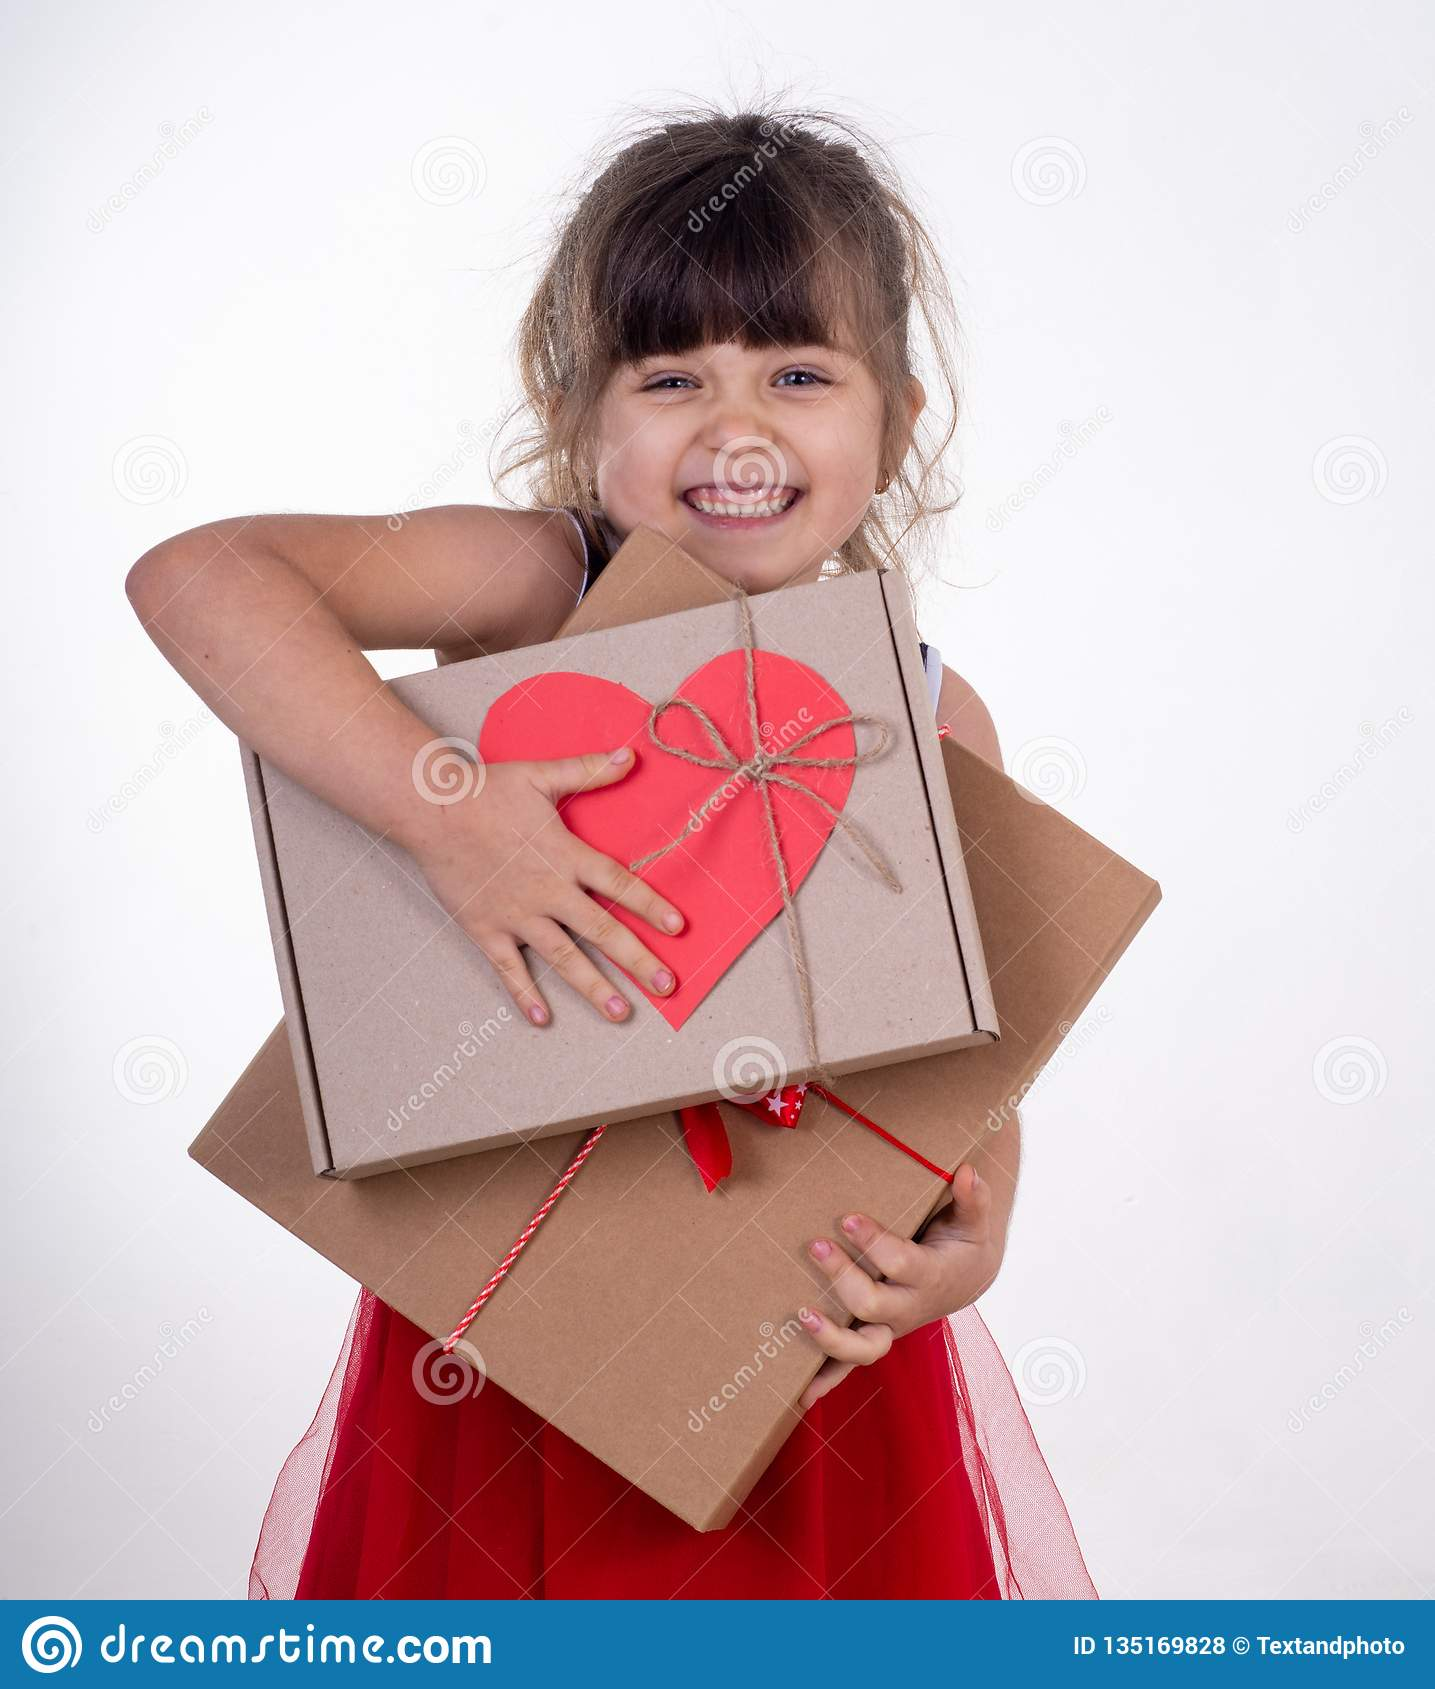 Little smiling girl holding present box isolated on white.